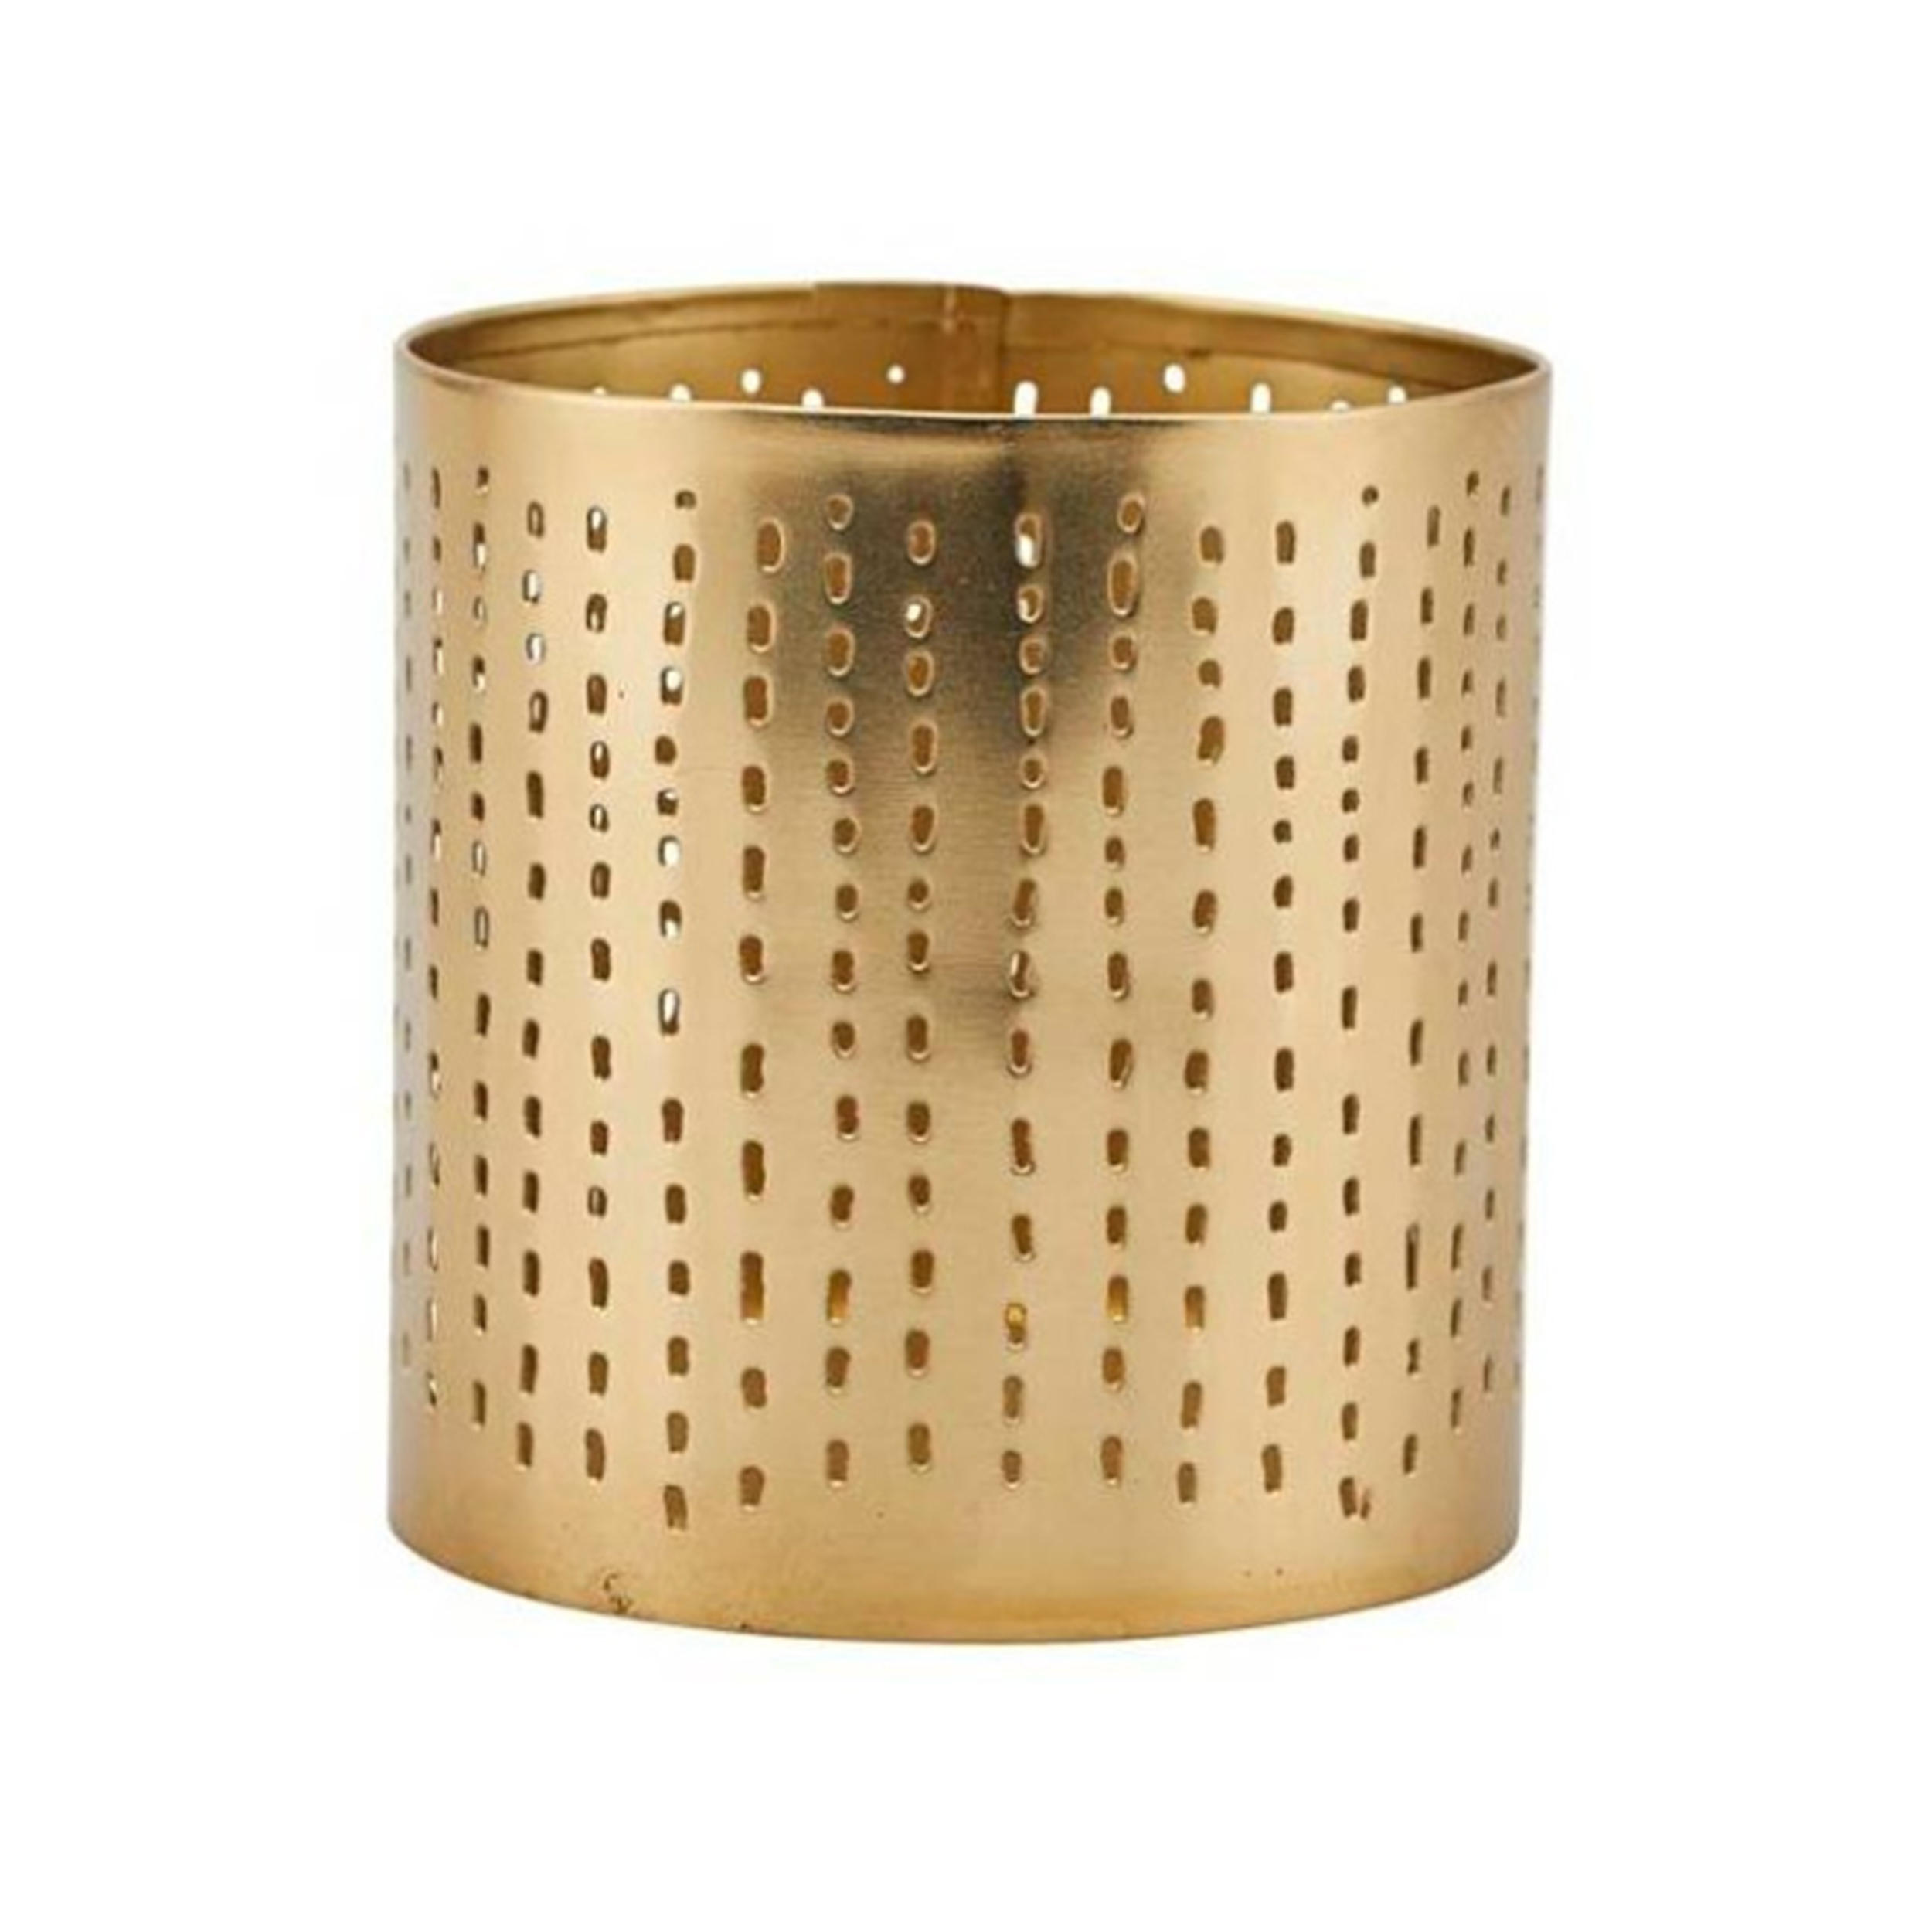 Decoratie waxinelichthouder House Docter candle stand 8.5cm goud